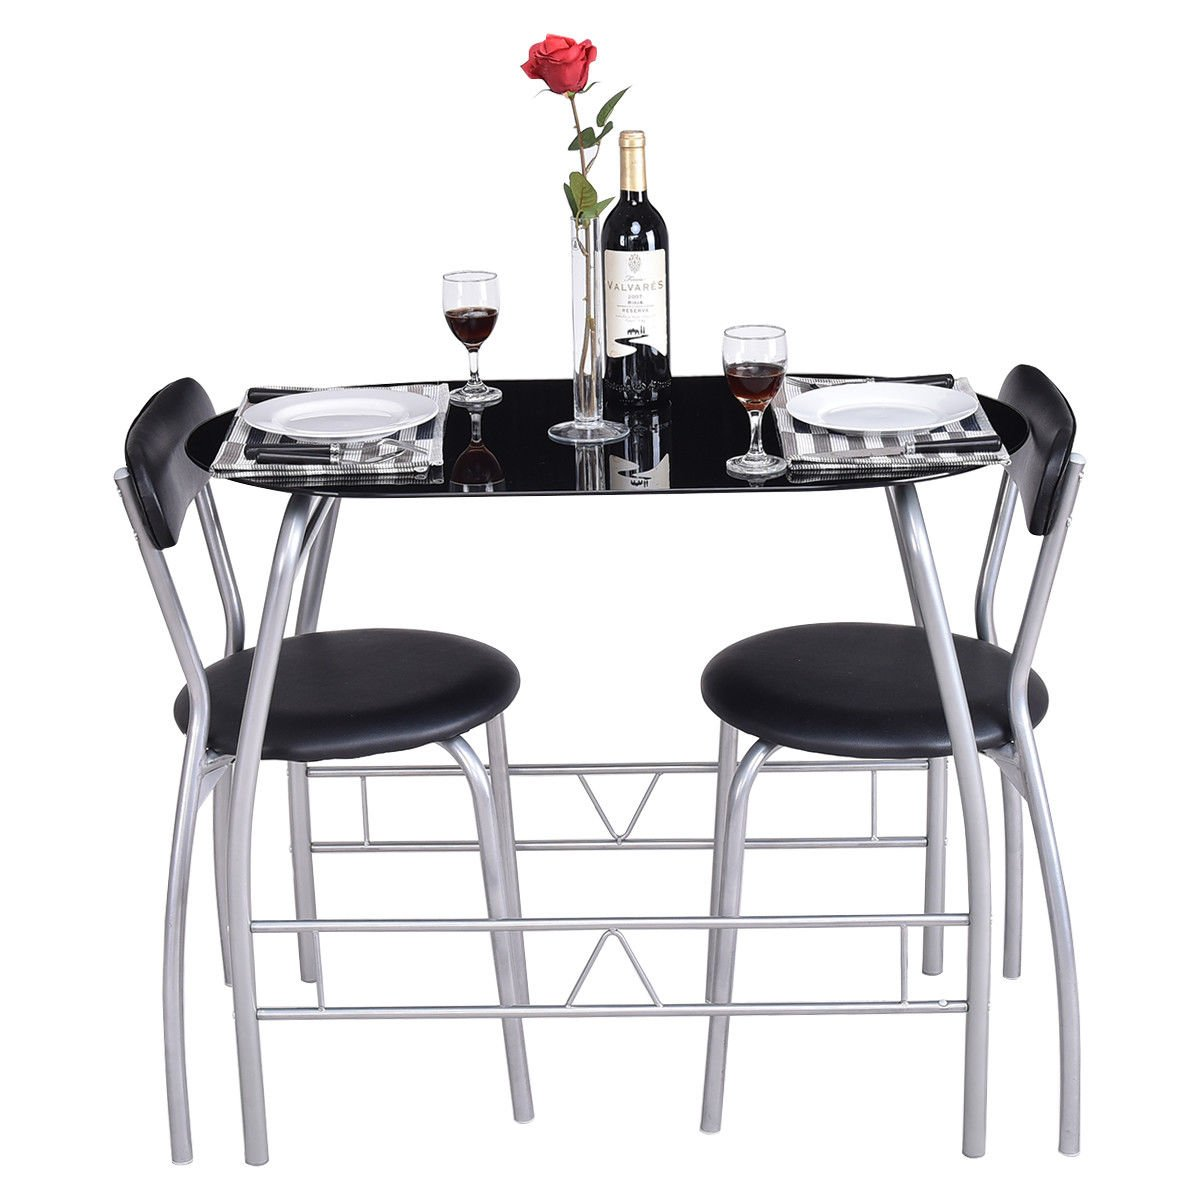 Traveller Location - Giantex 3 Piece Bistro Dining Set with Breakfast Chairs,  Tempered Glass Table Top Furniture - Table & Chair Sets